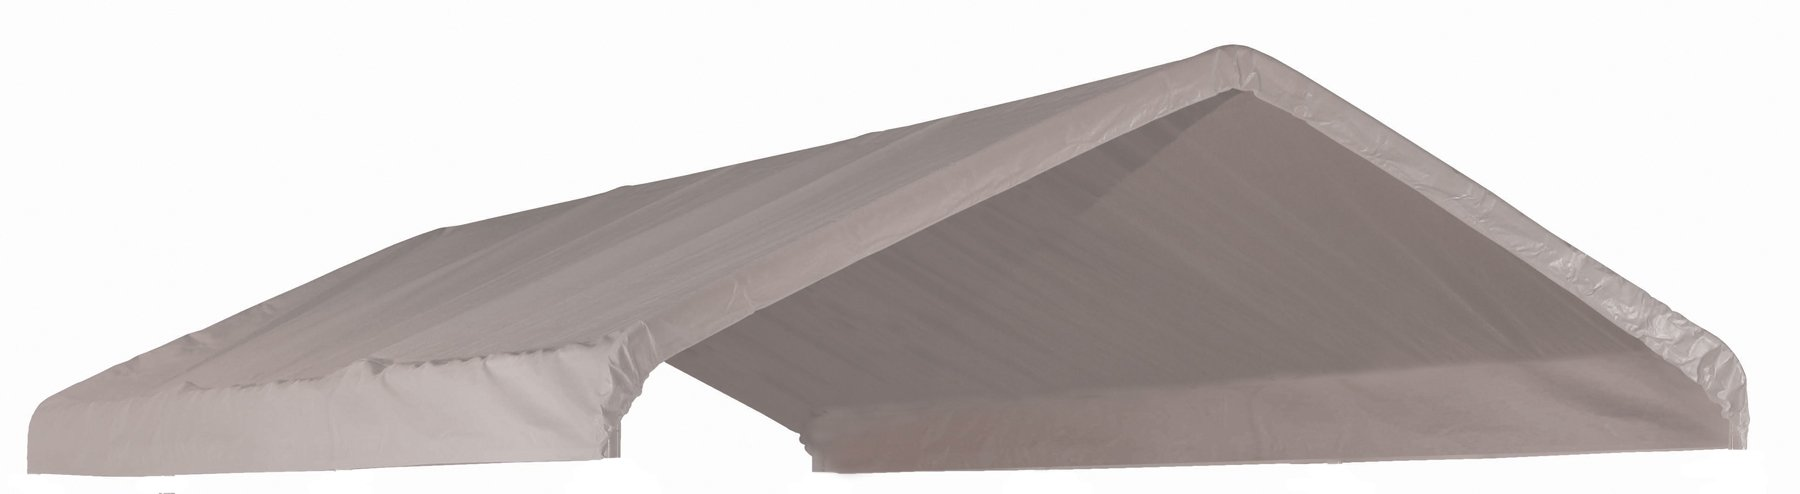 ShelterLogic 11072 10 x 20- Feet Canopy Replacement Cover, Fits 2- Inch Frame